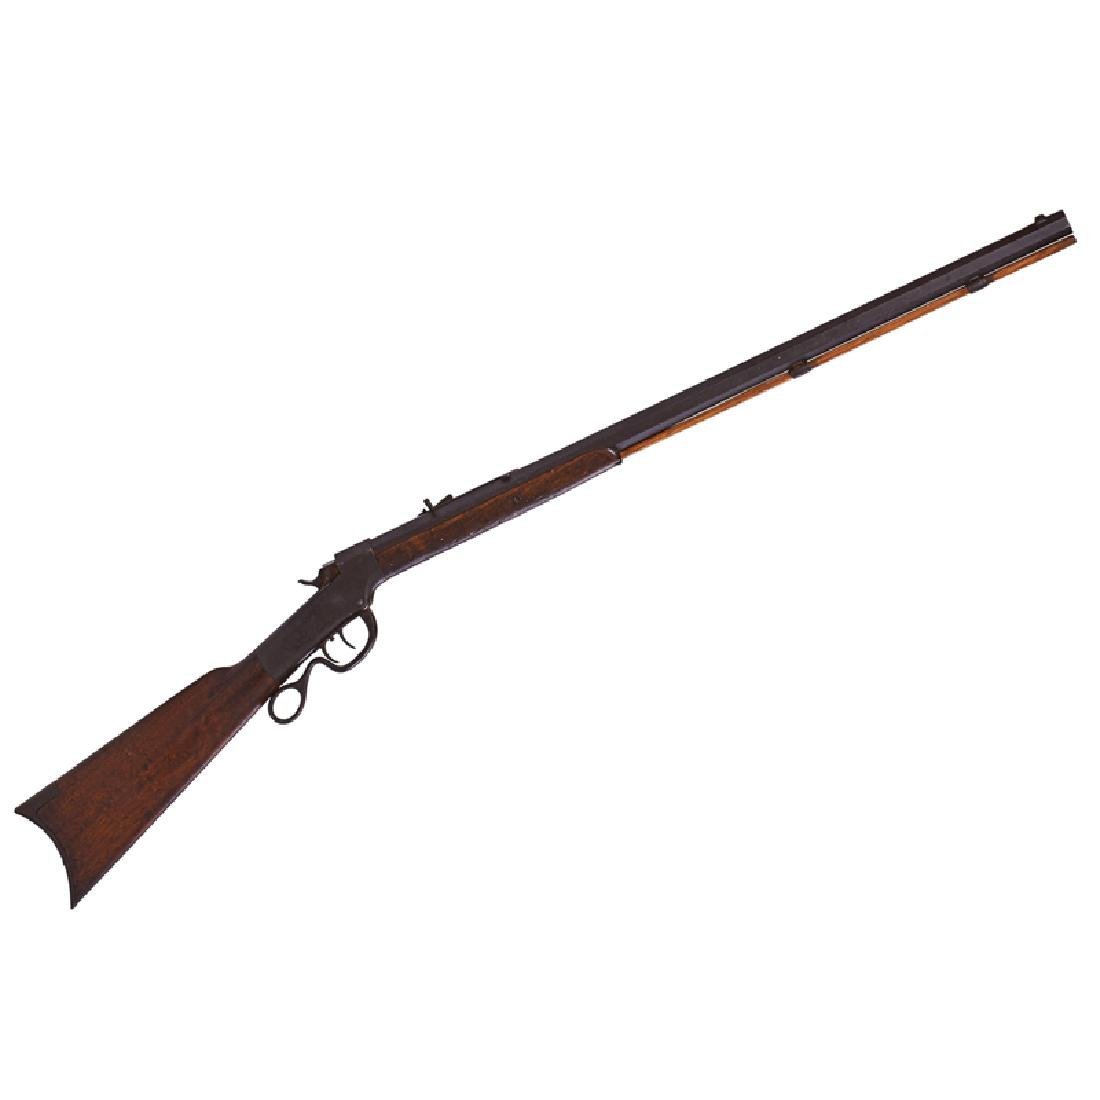 BULLARD NO. 5 PACIFIC RIFLE